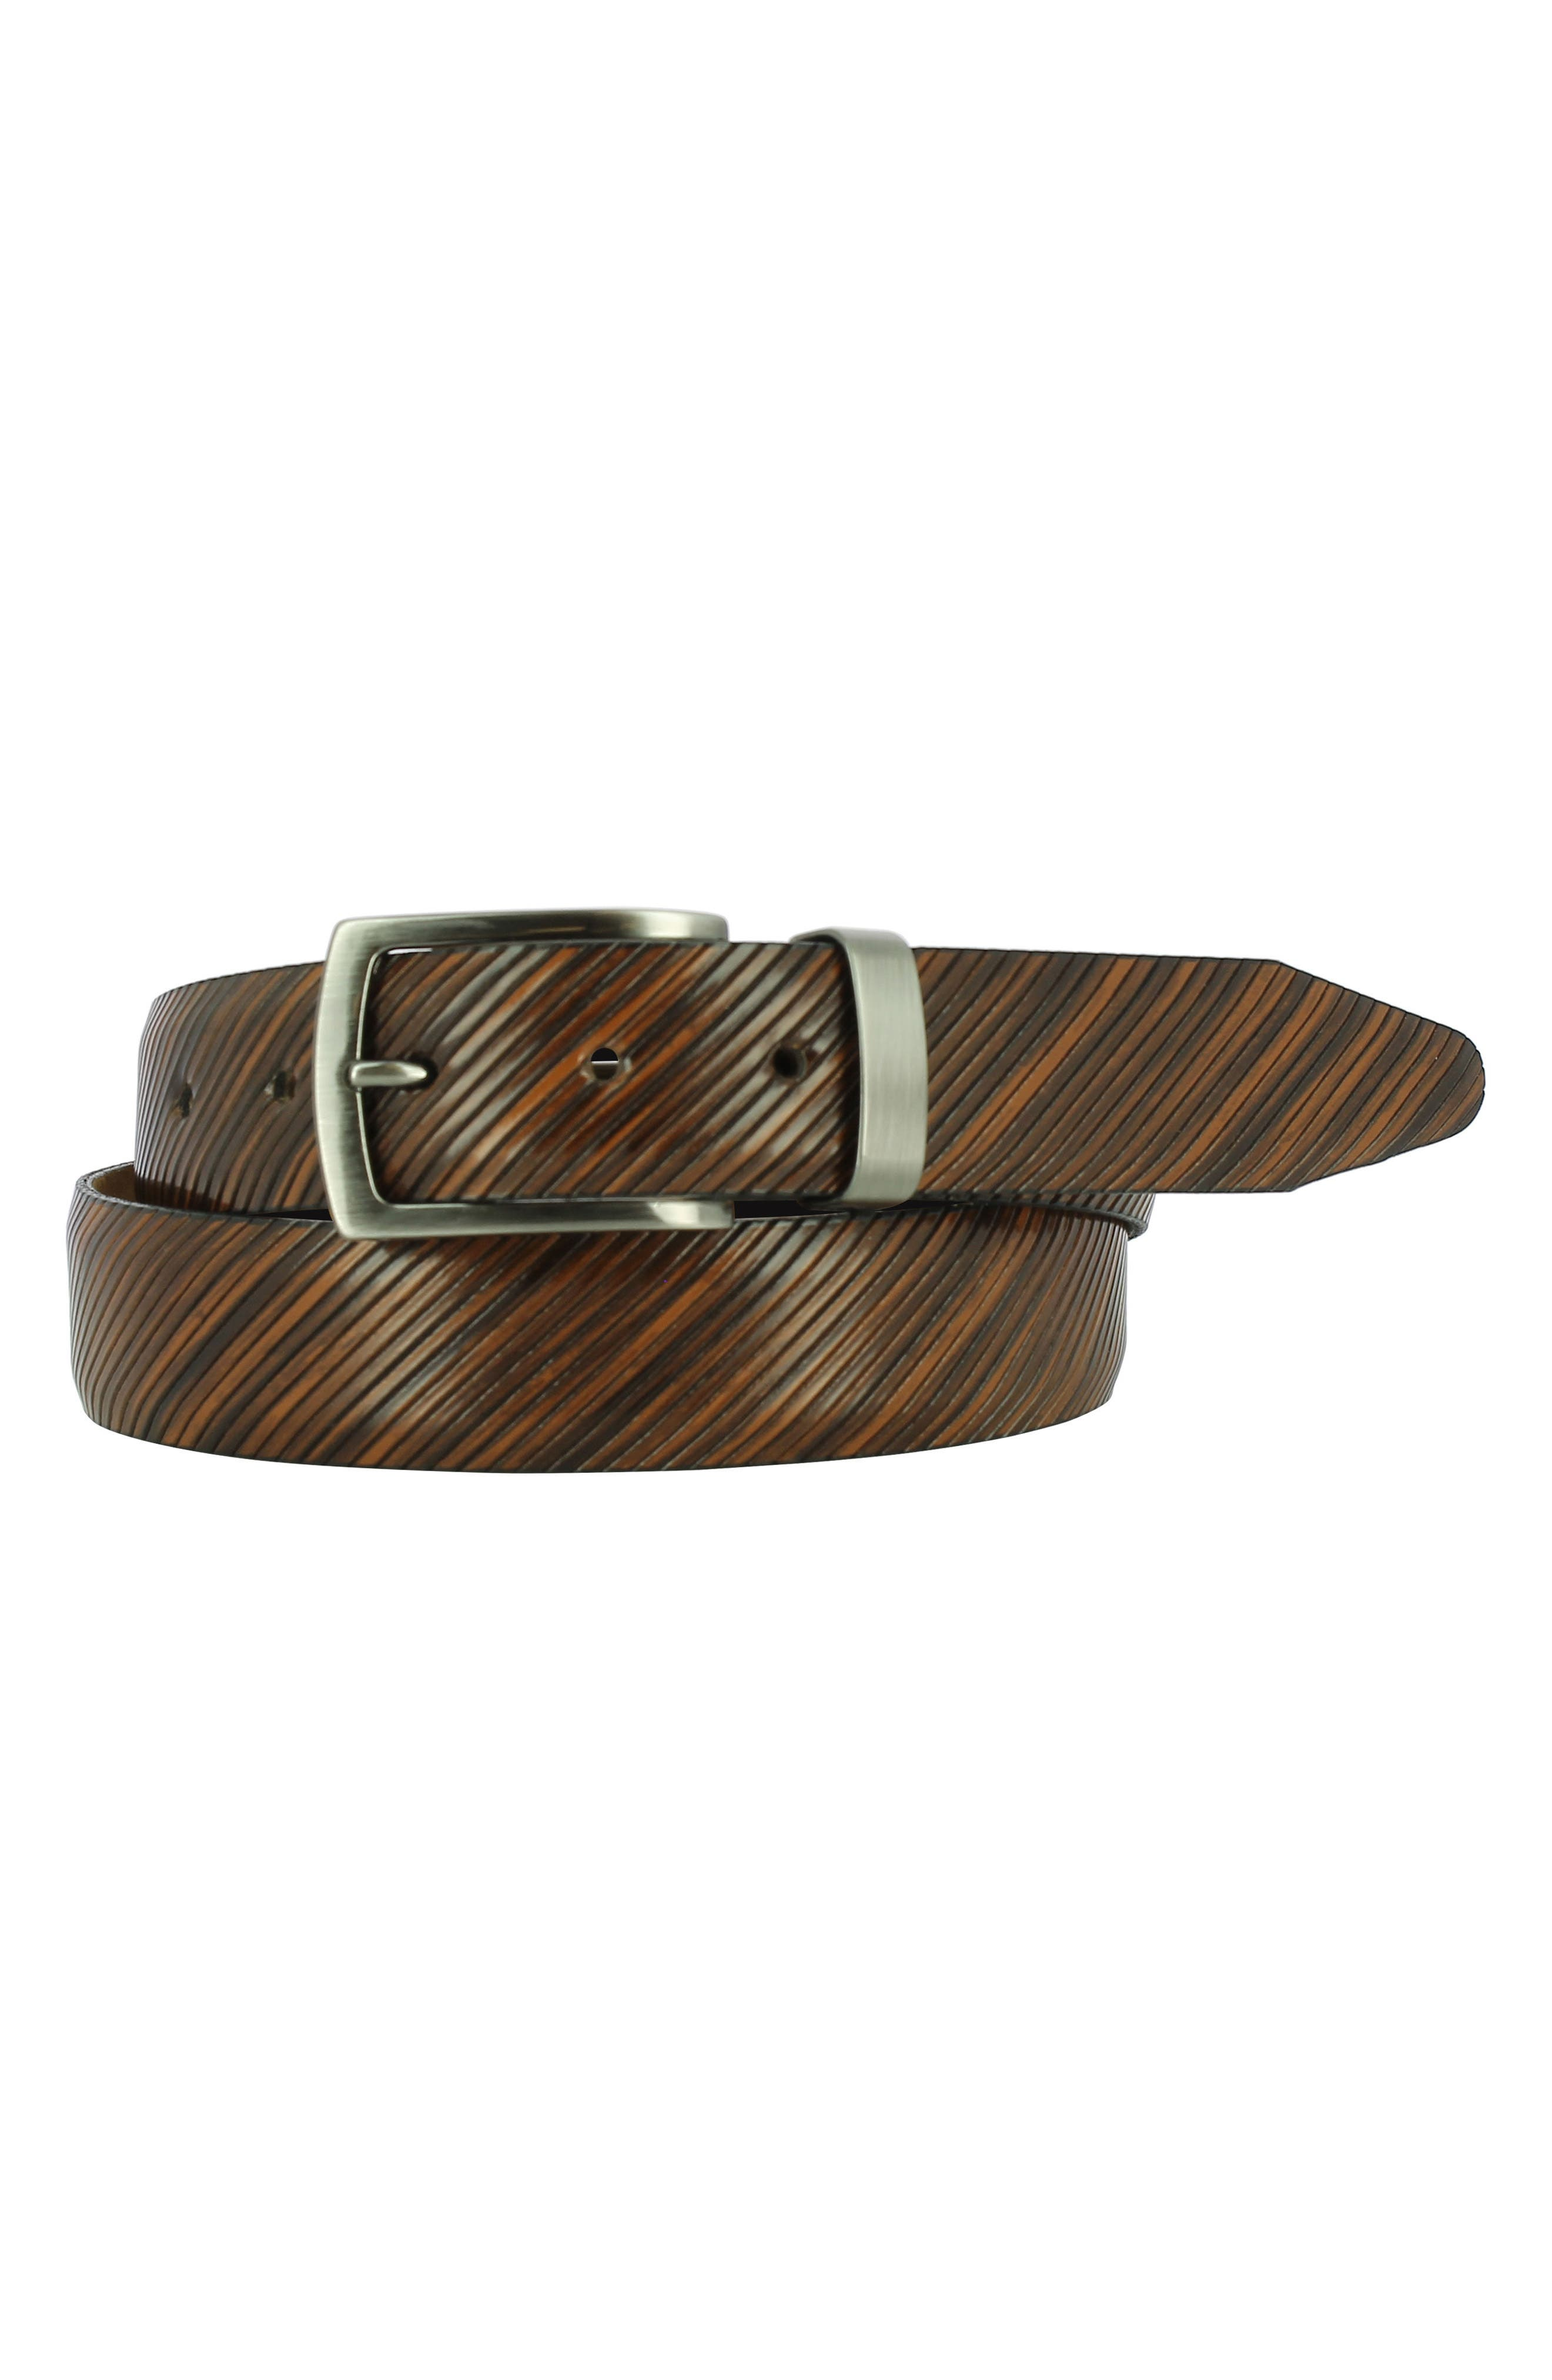 Main Image - Remo Tulliani Sylvio Leather Belt